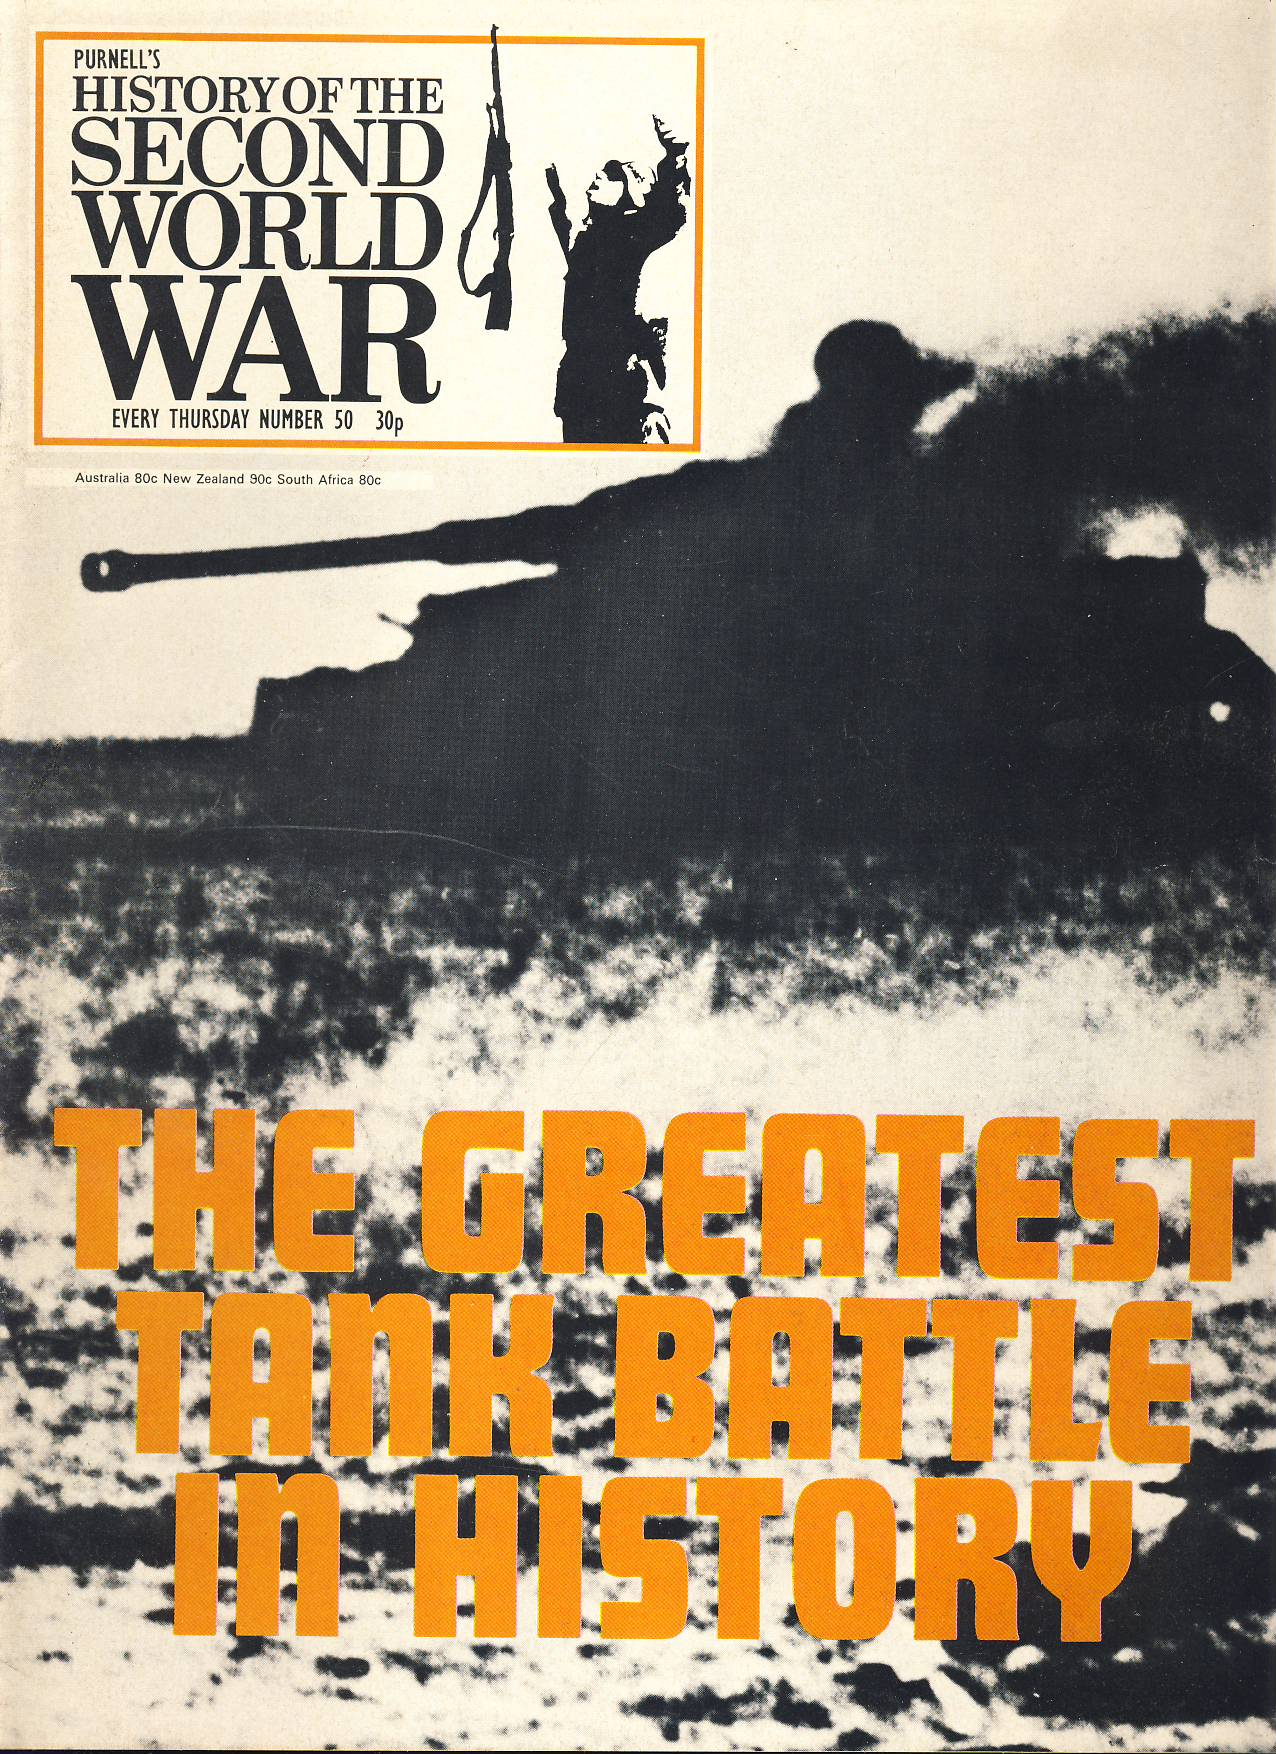 History of the Second World War Magazine #50 Greatest Tank Battle in History